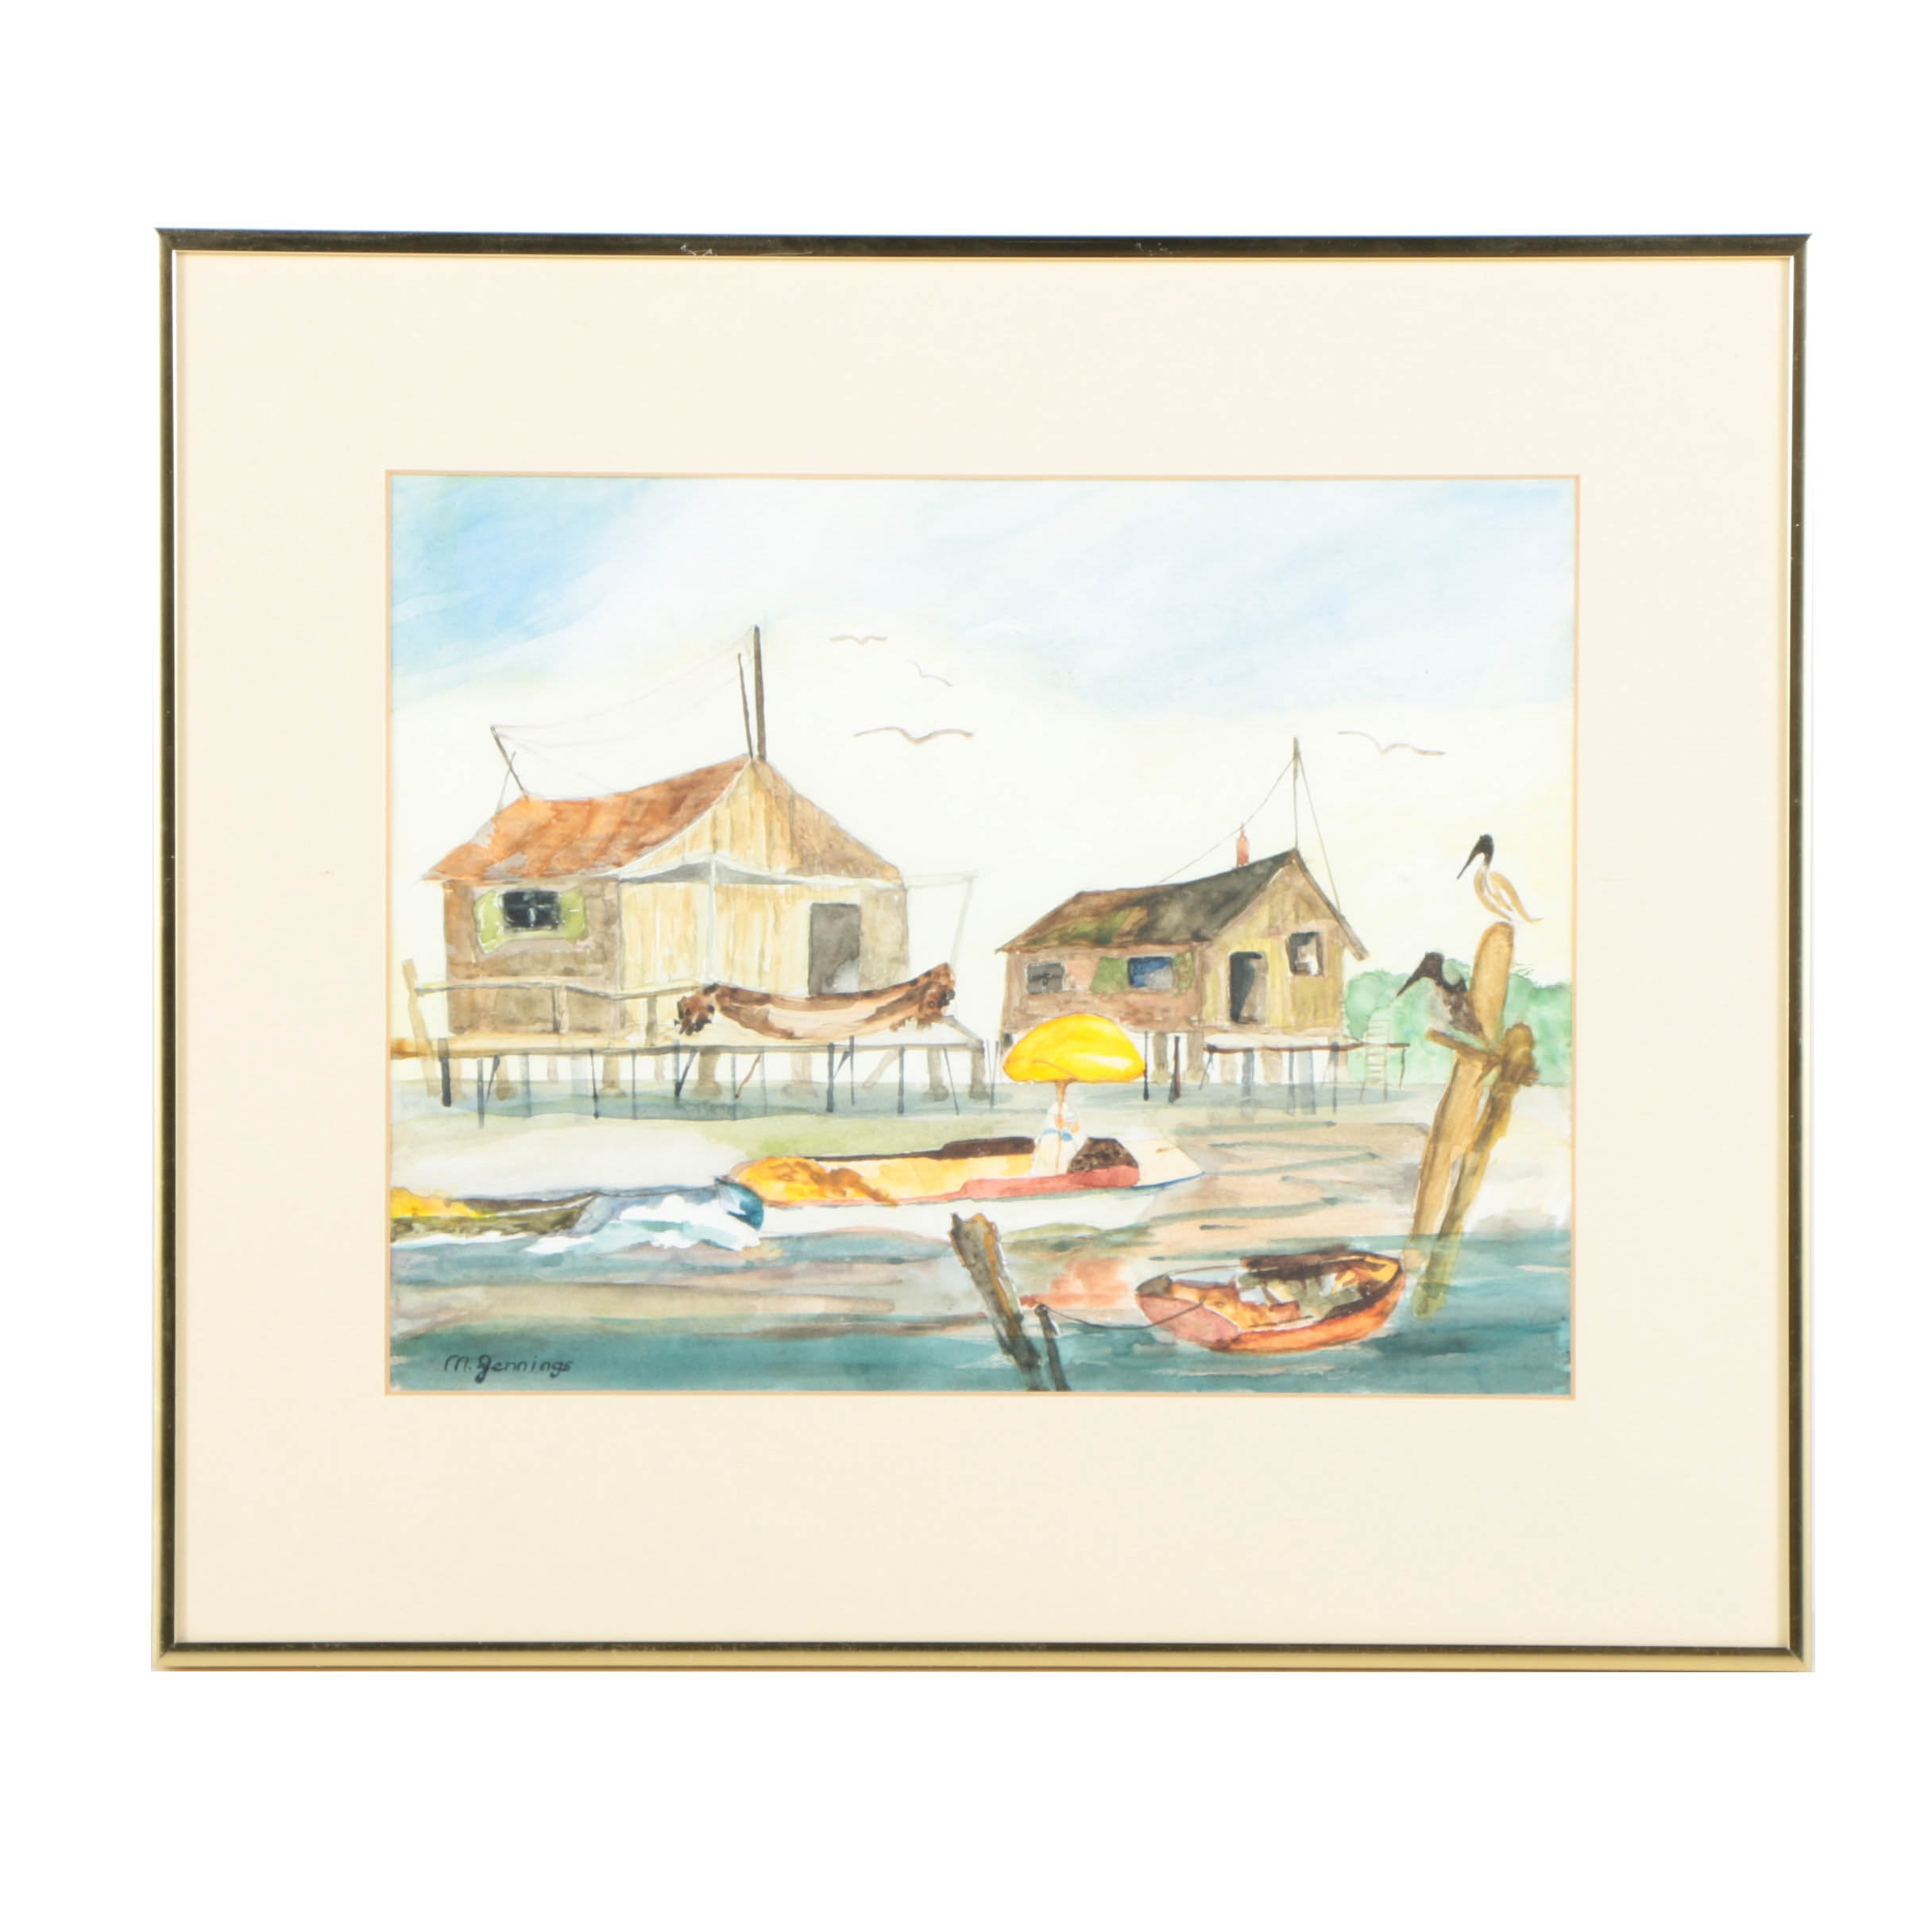 M. Jennings Watercolor Painting of a Harbor